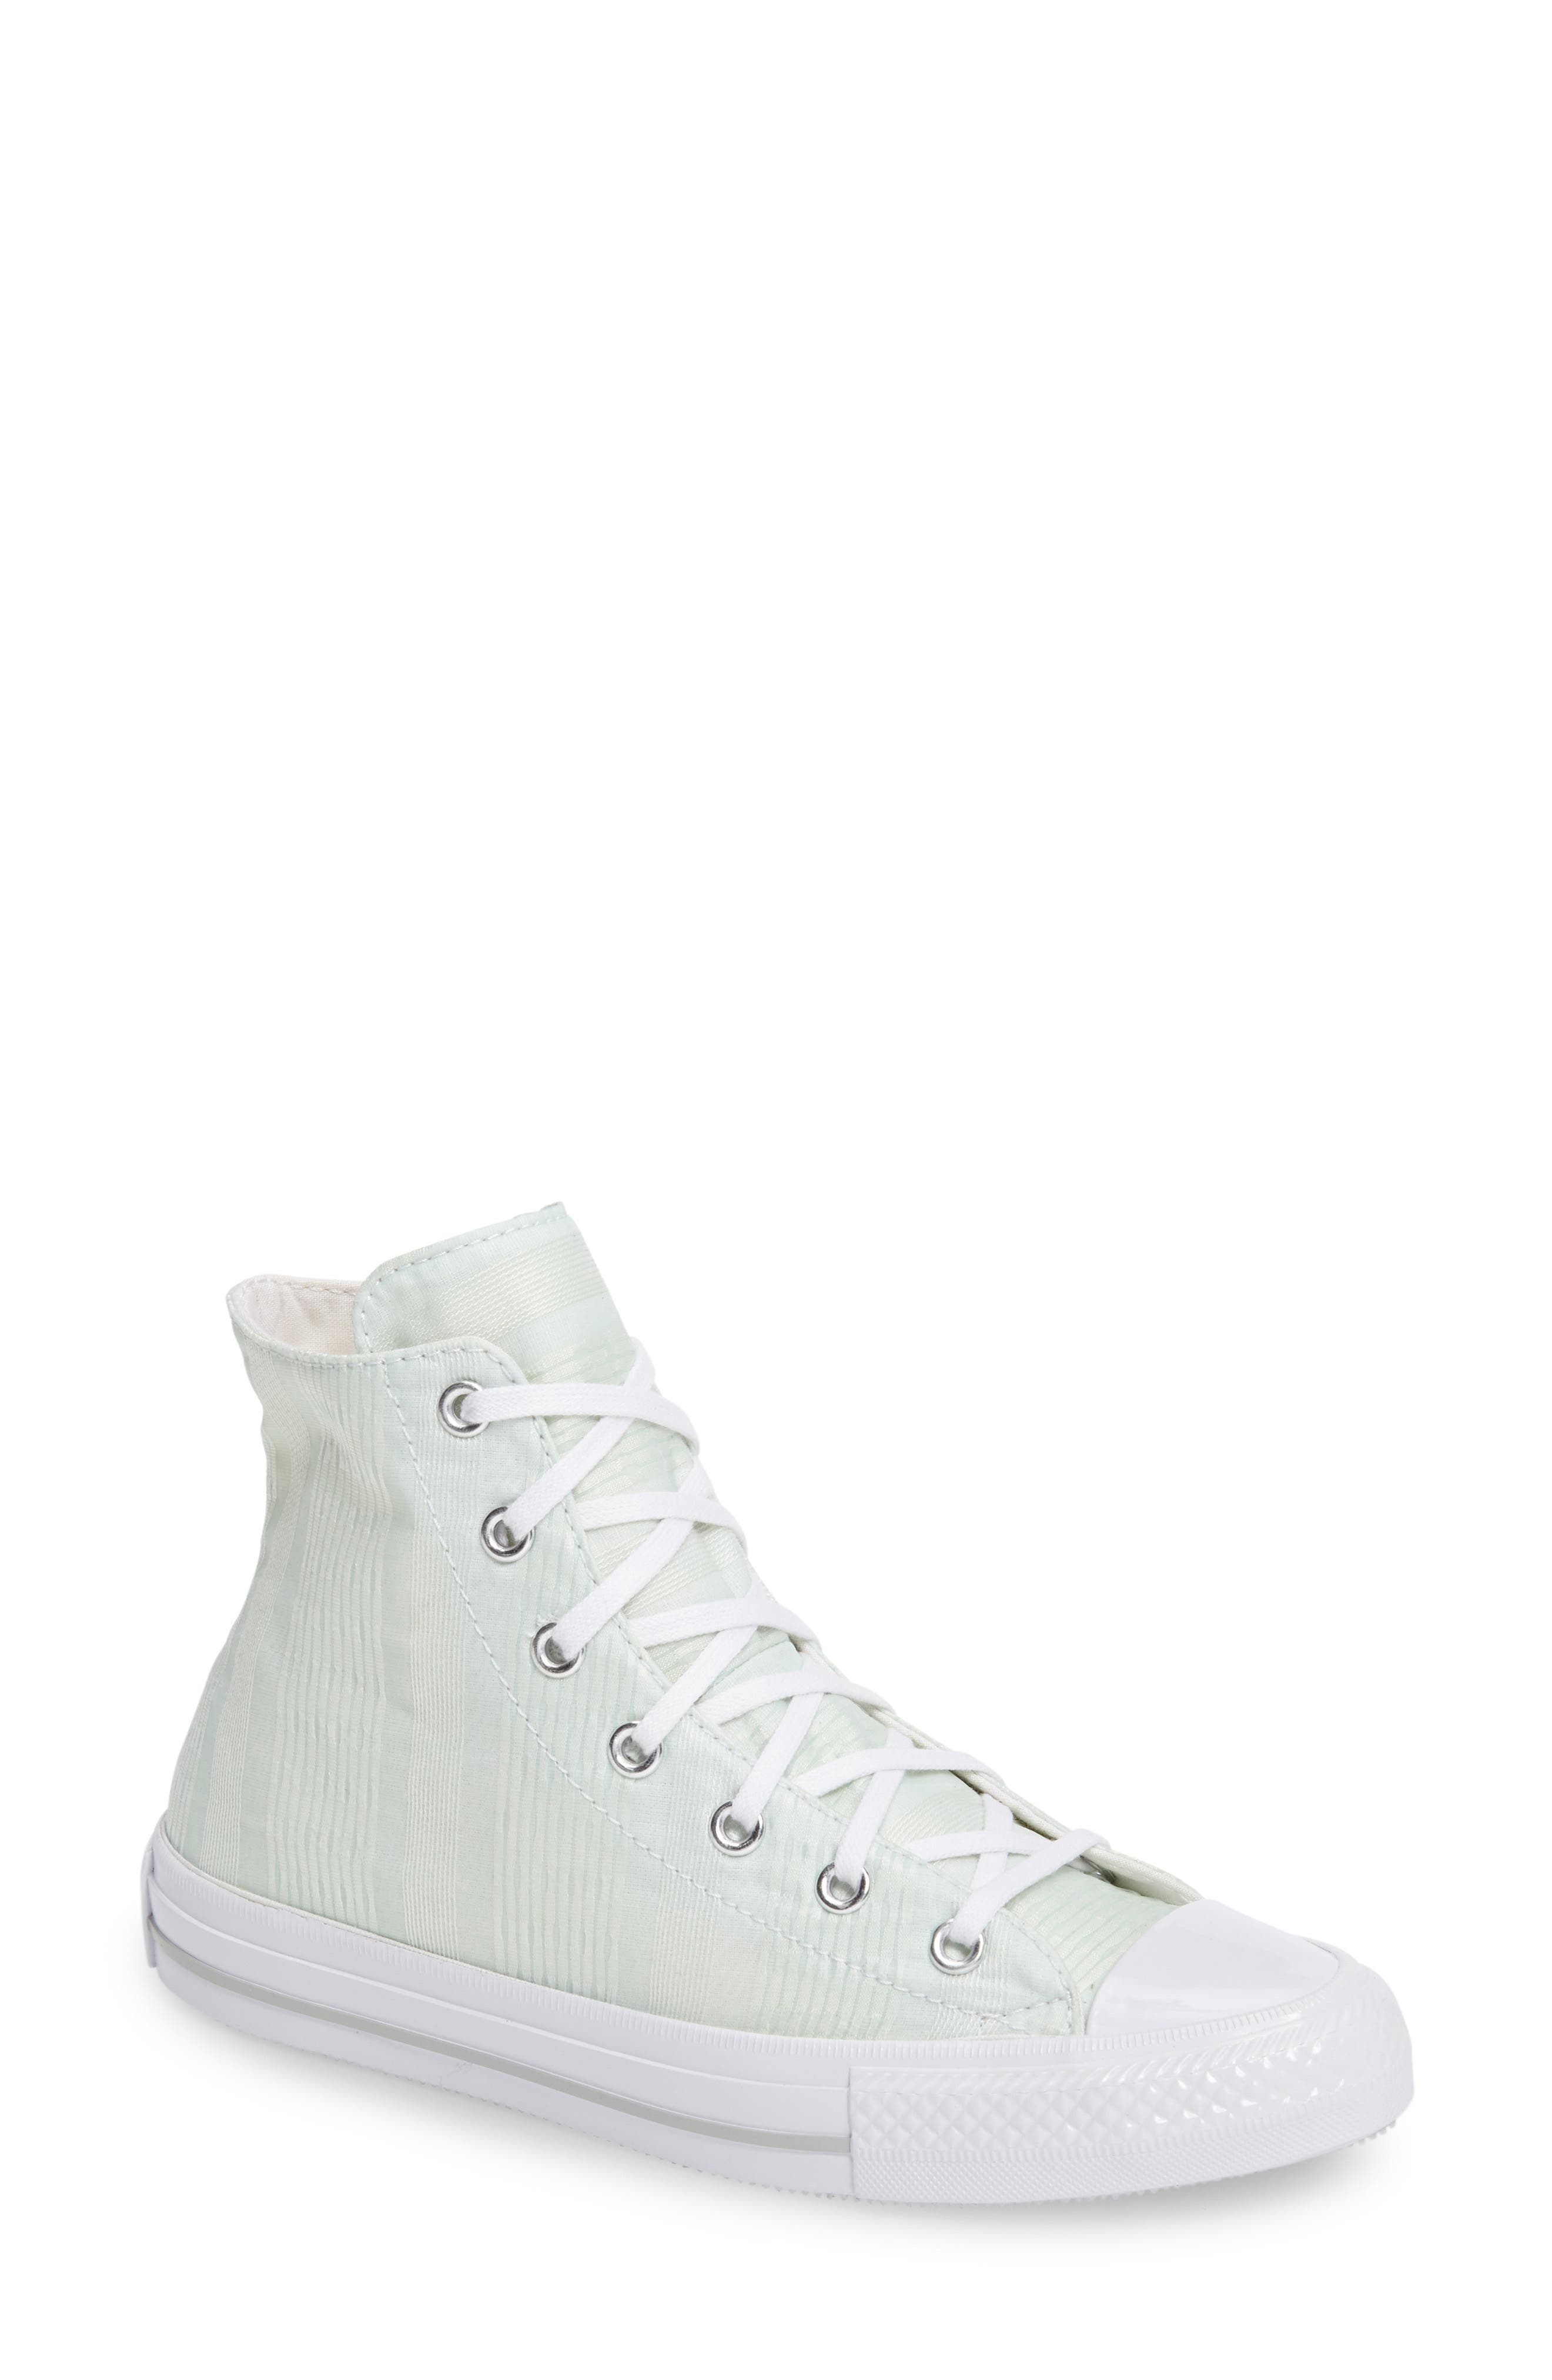 Alternate Image 1 Selected - Converse Chuck Taylor® All Star® Gemma High Top Sneaker (Women)